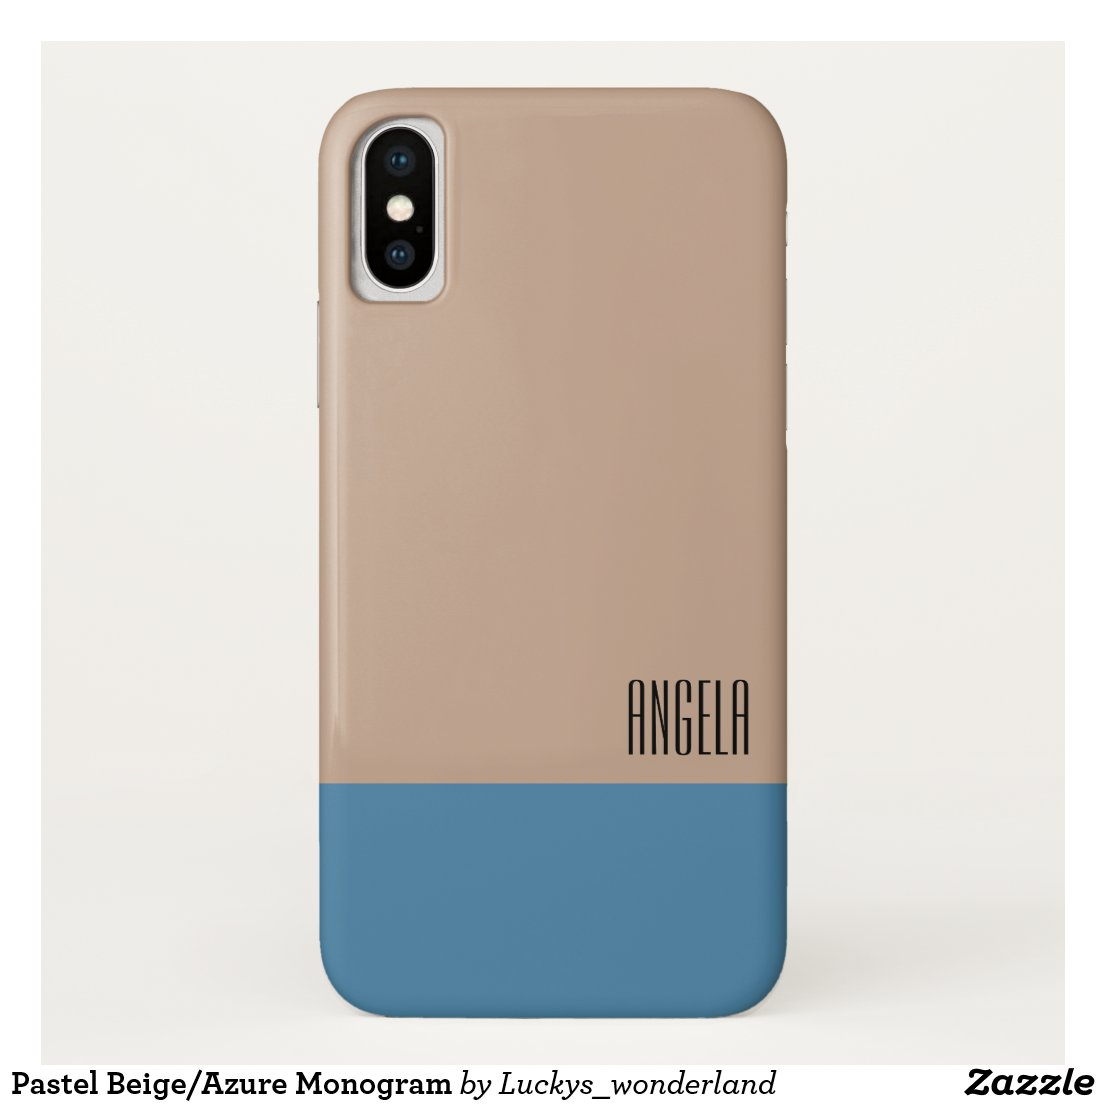 Pastel Beige/Azure Monogram iPhone X Case